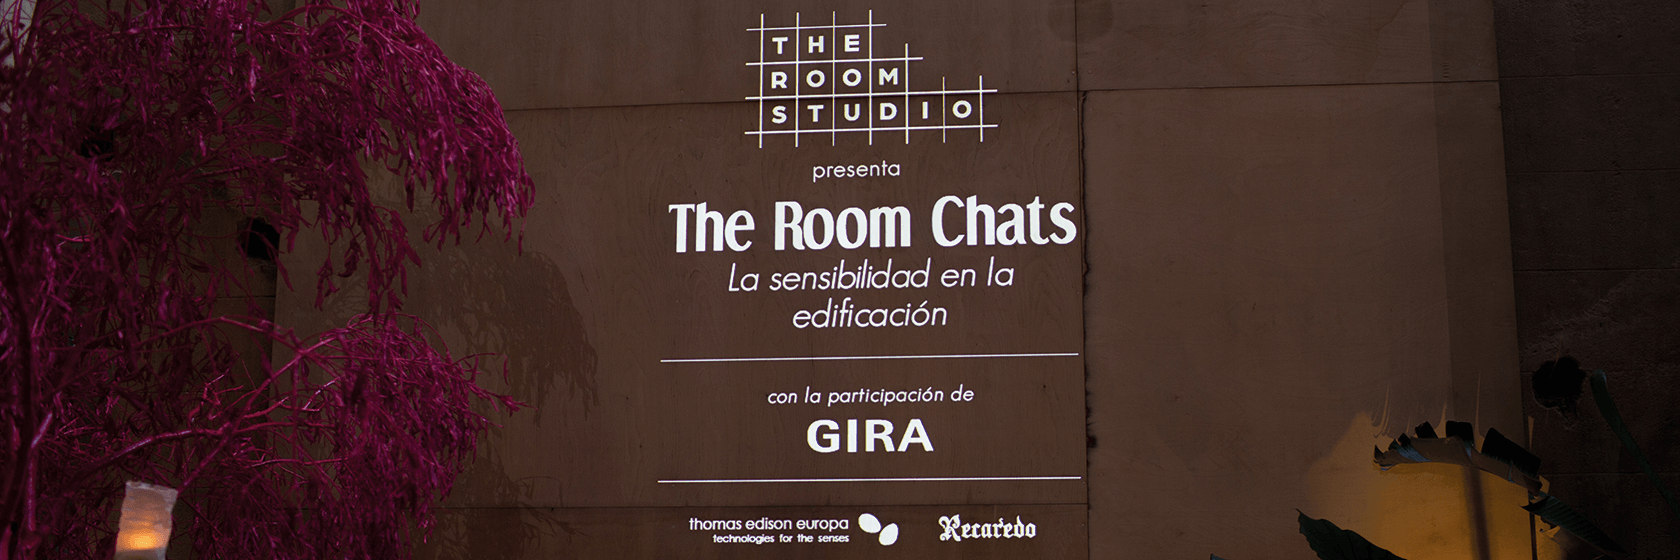 1ª Edición de The Room Chats | The Room Studio